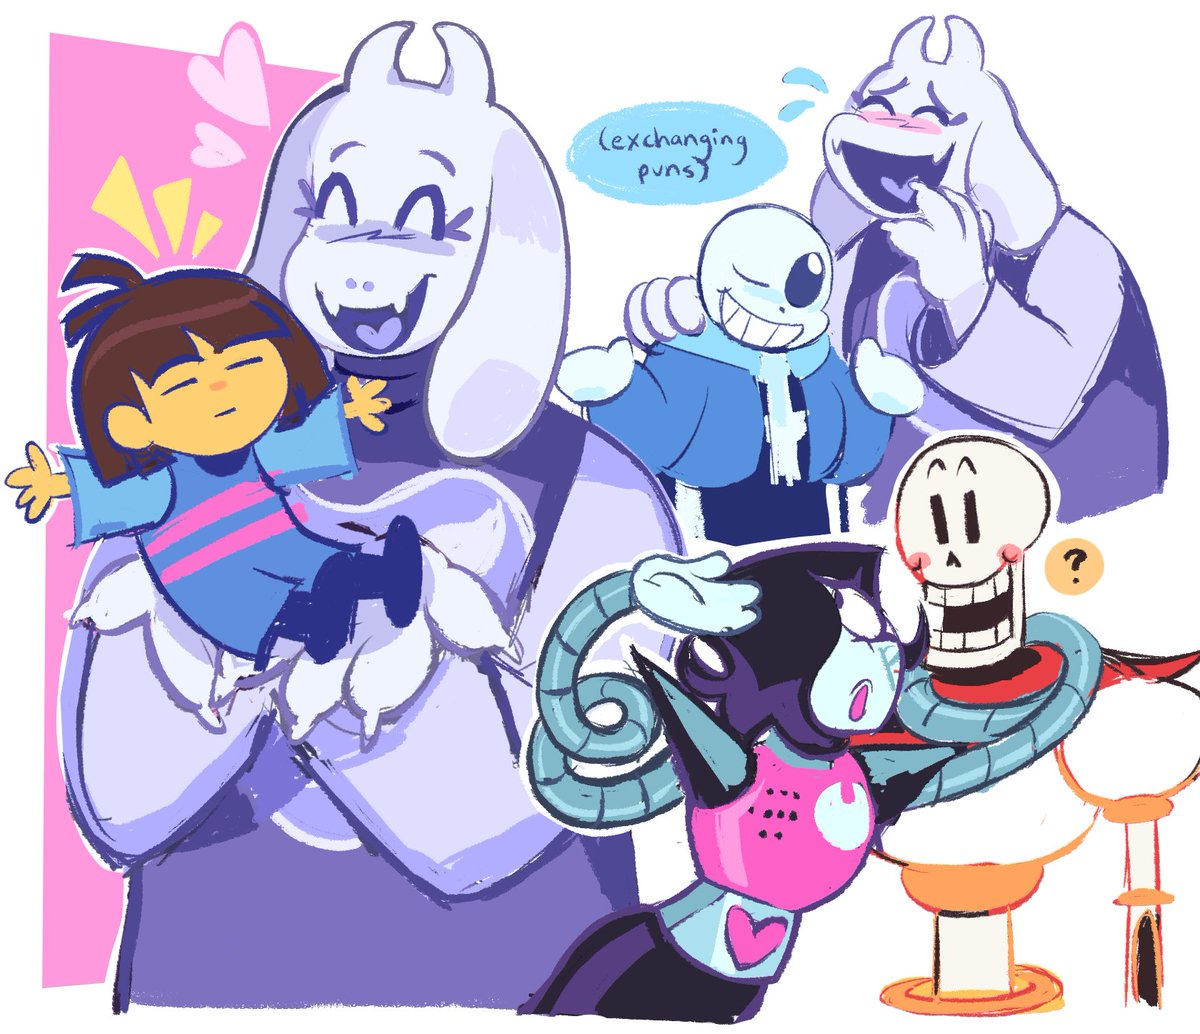 RT @POPPYR0CKZ: im a little late but i still wanted to draw something.. i love this game so much #undertale https://t.co/4NX4xQPBFc